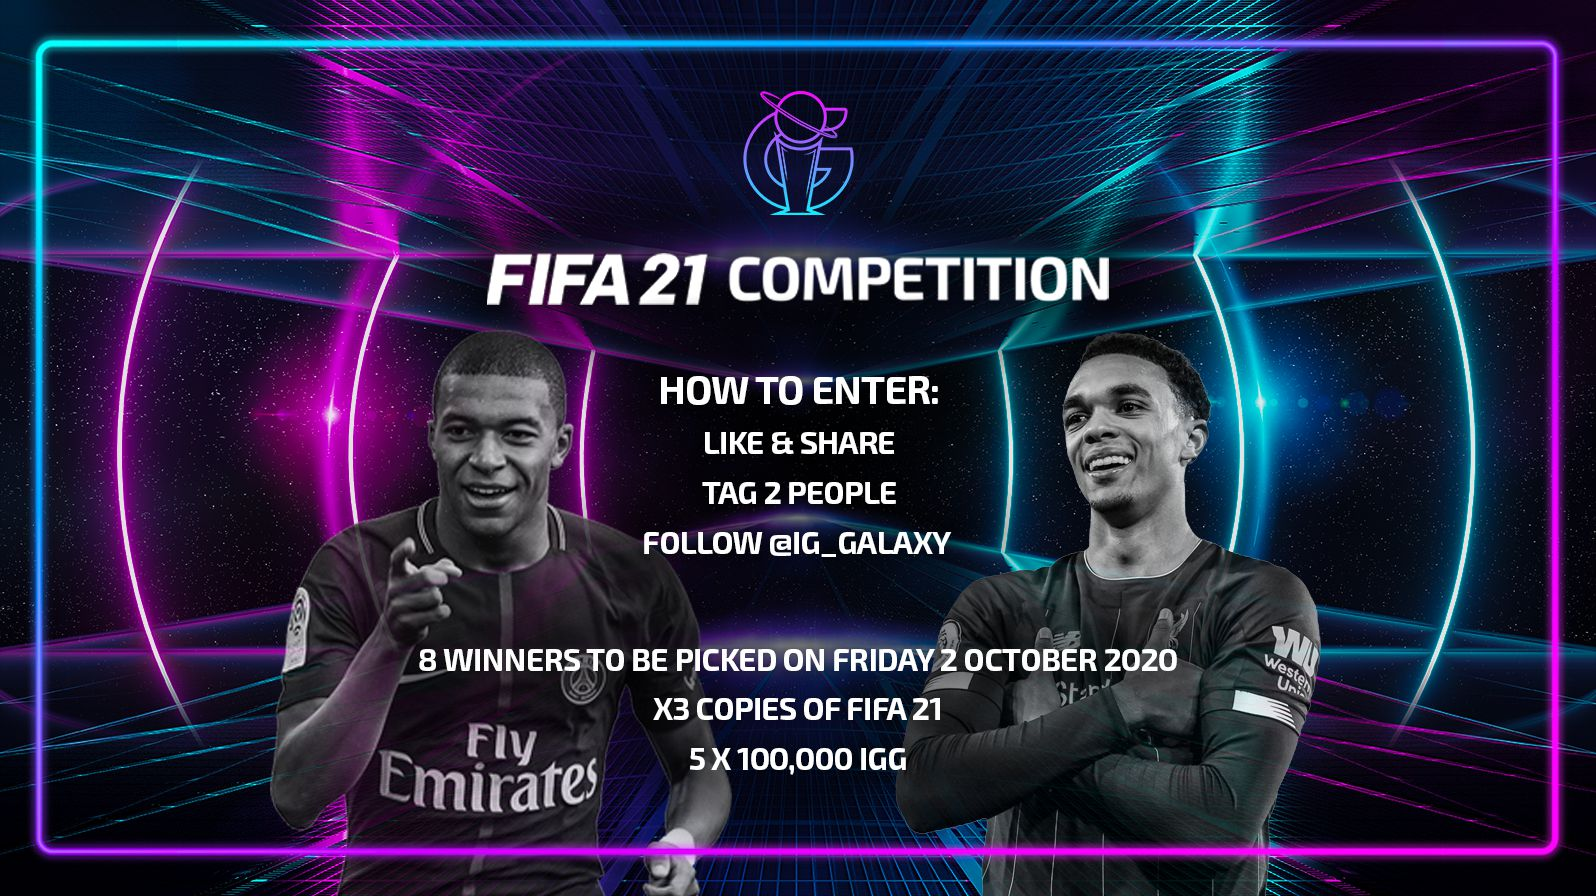 Be in with a chance of winning a free copy of FIFA 21 or 100,000 IGG!